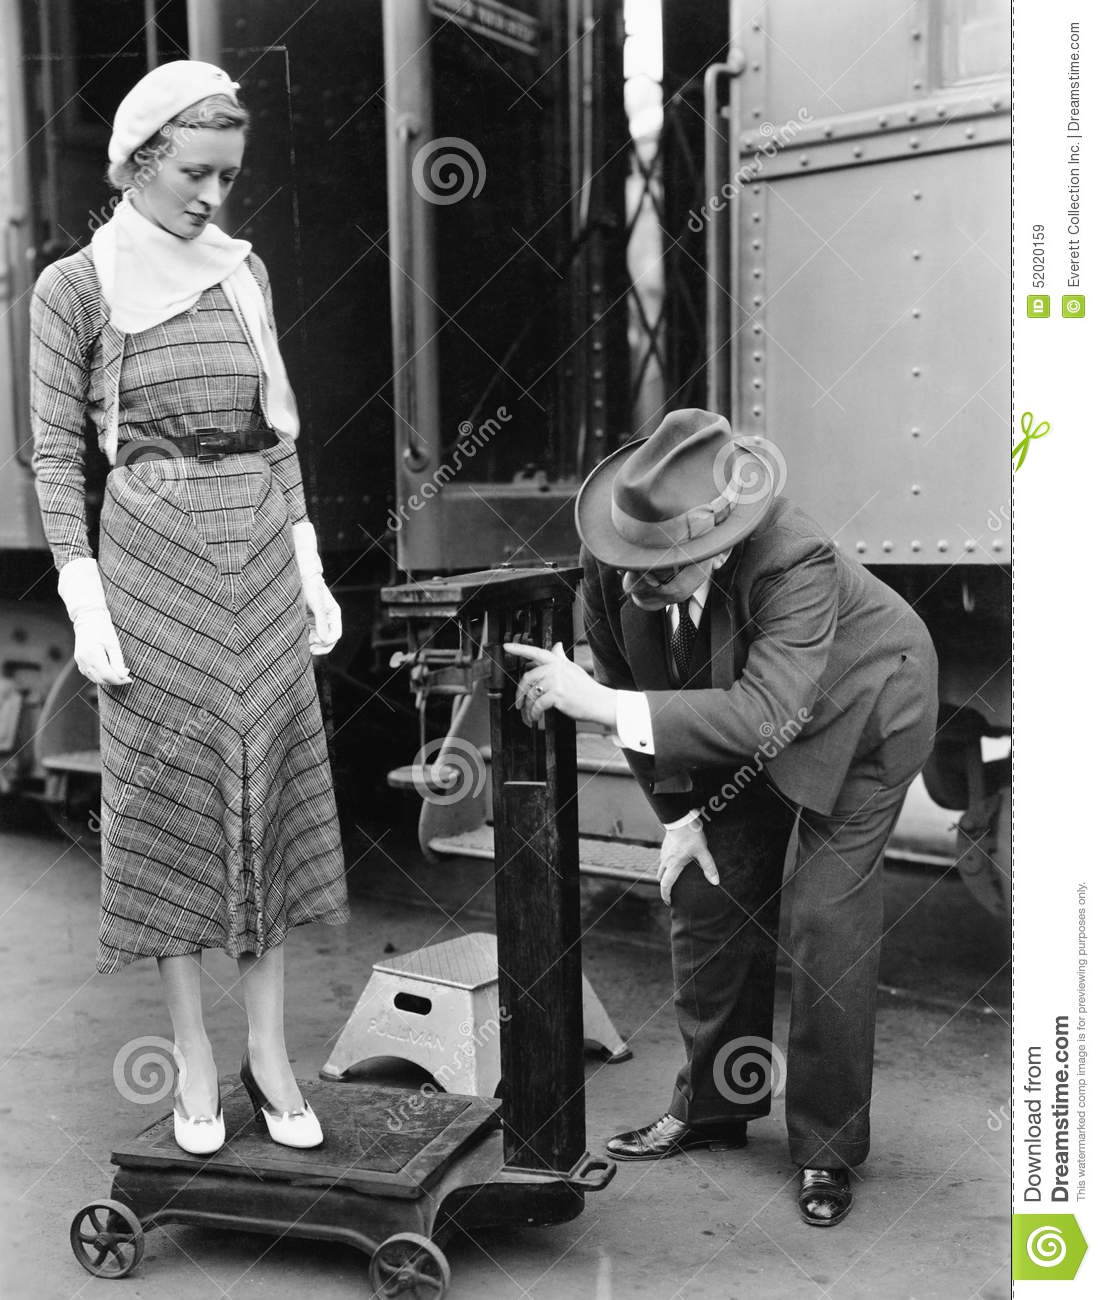 Profile of a man measuring weight of a woman standing on a weighing scale in front of a train